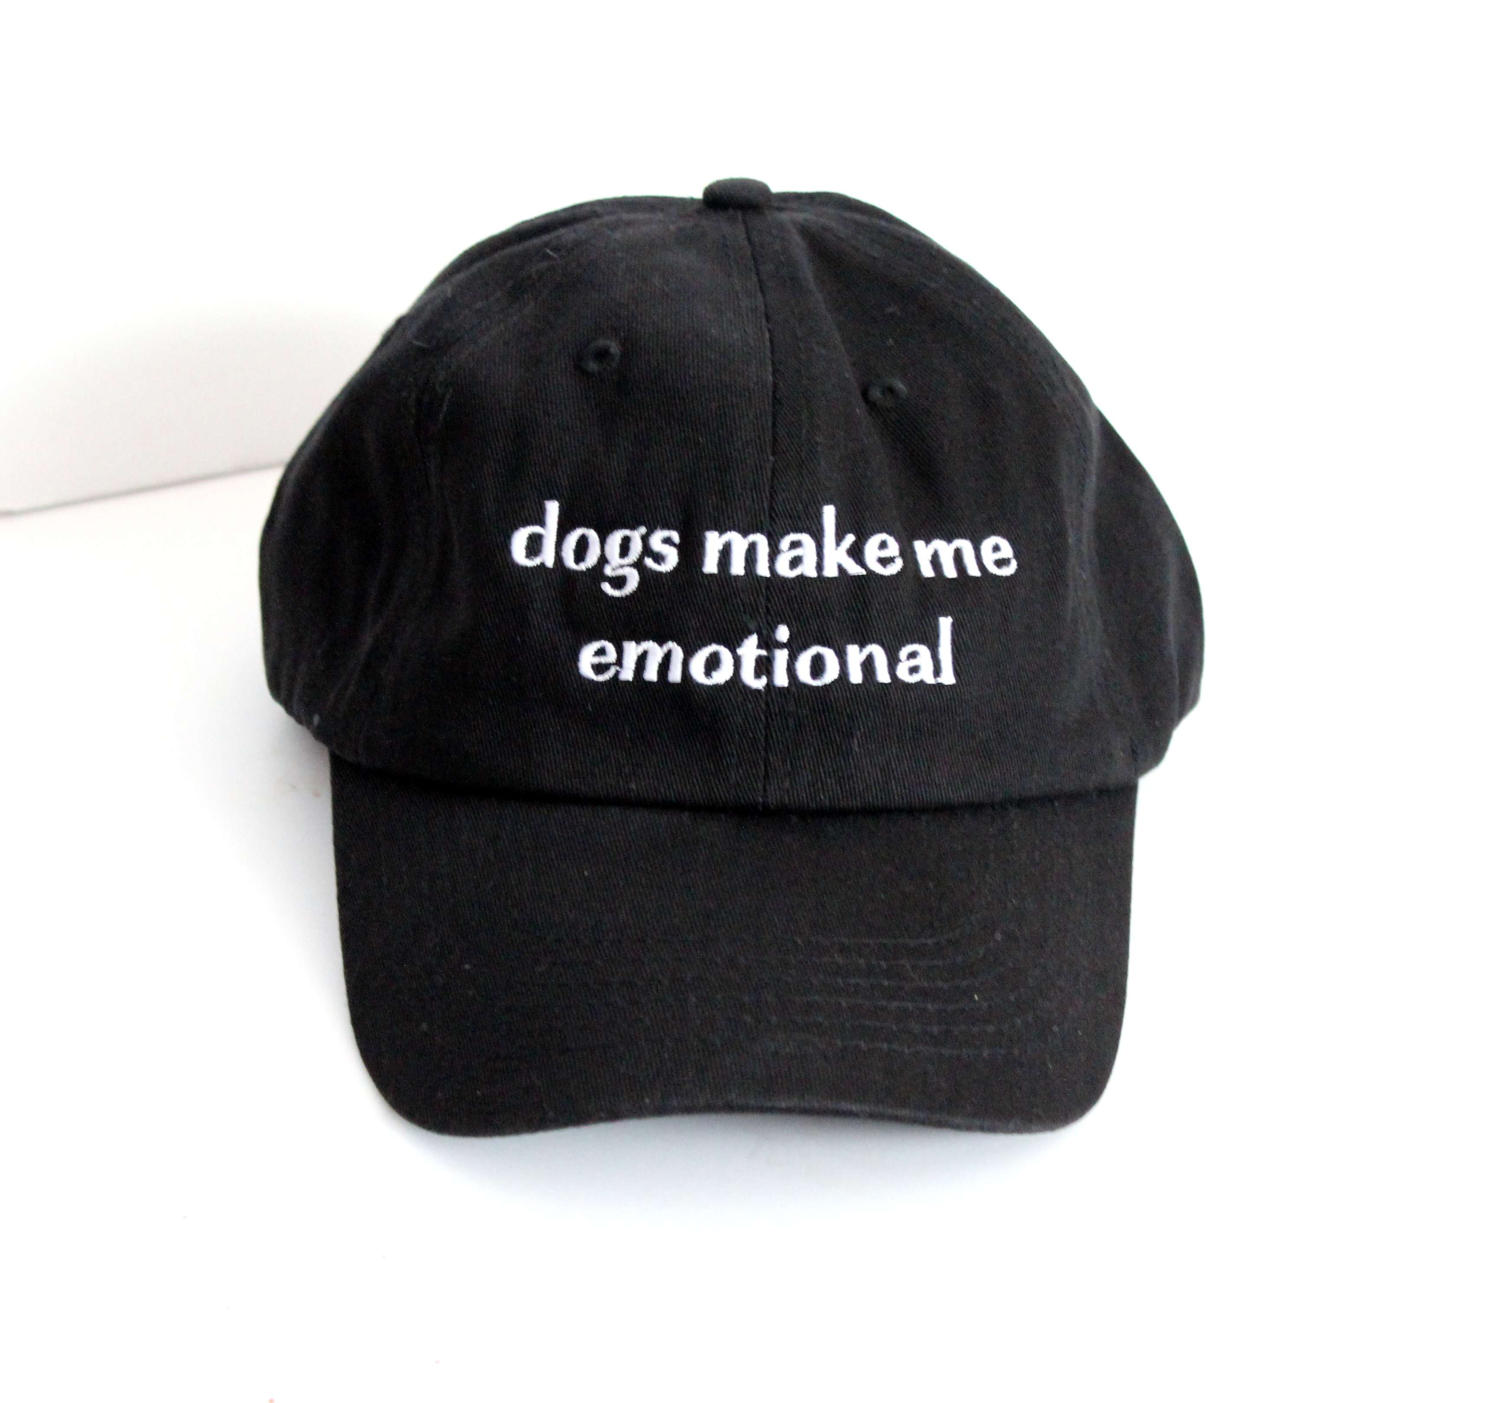 b72ceef4 Dogs Make Me Emotional black and white Embroidered Dad hat // cotton ...